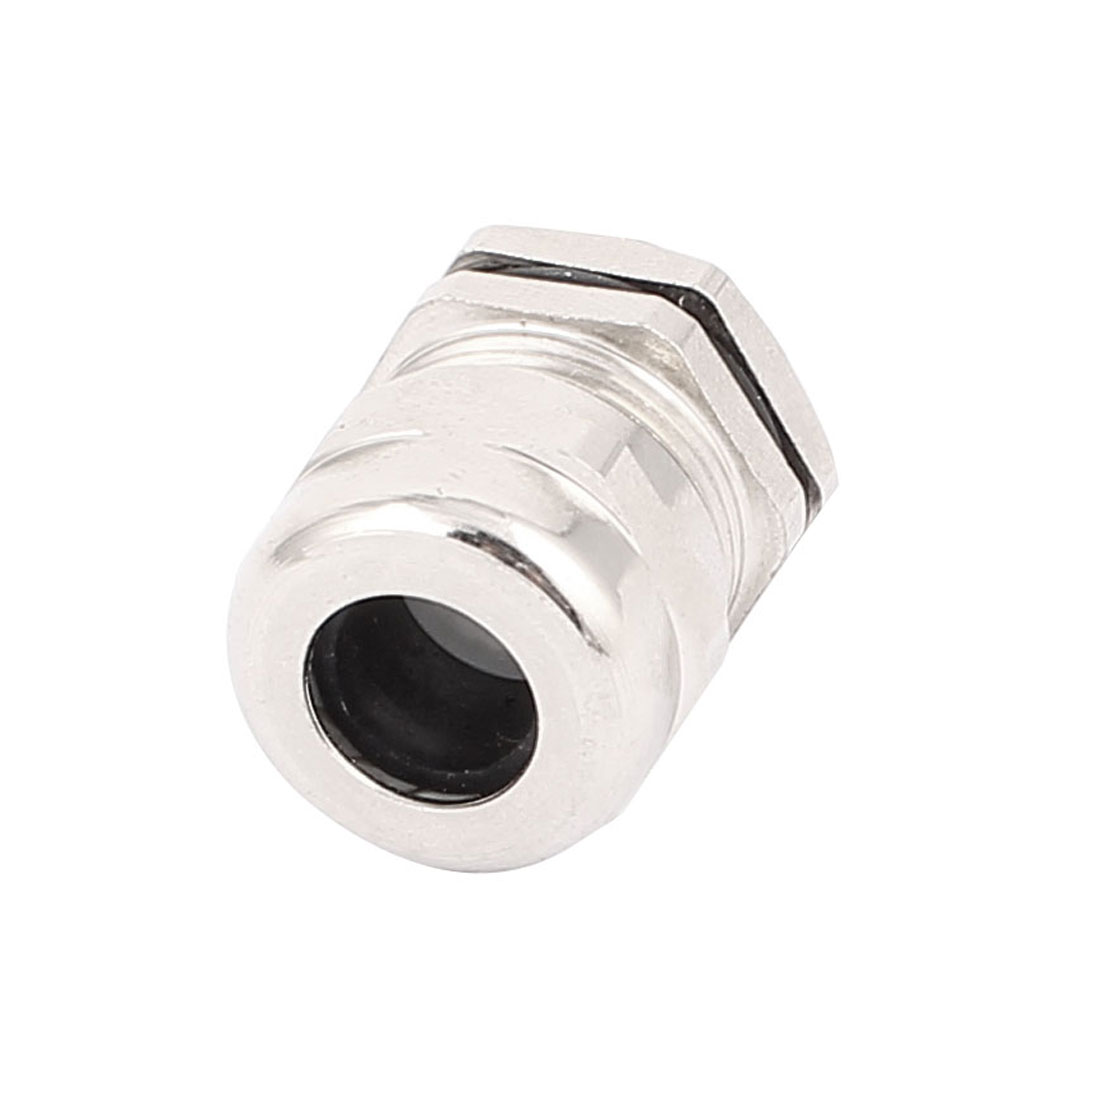 PG11 Thread Waterproof Cable Gland for 5-10mm Cable Silver Tone